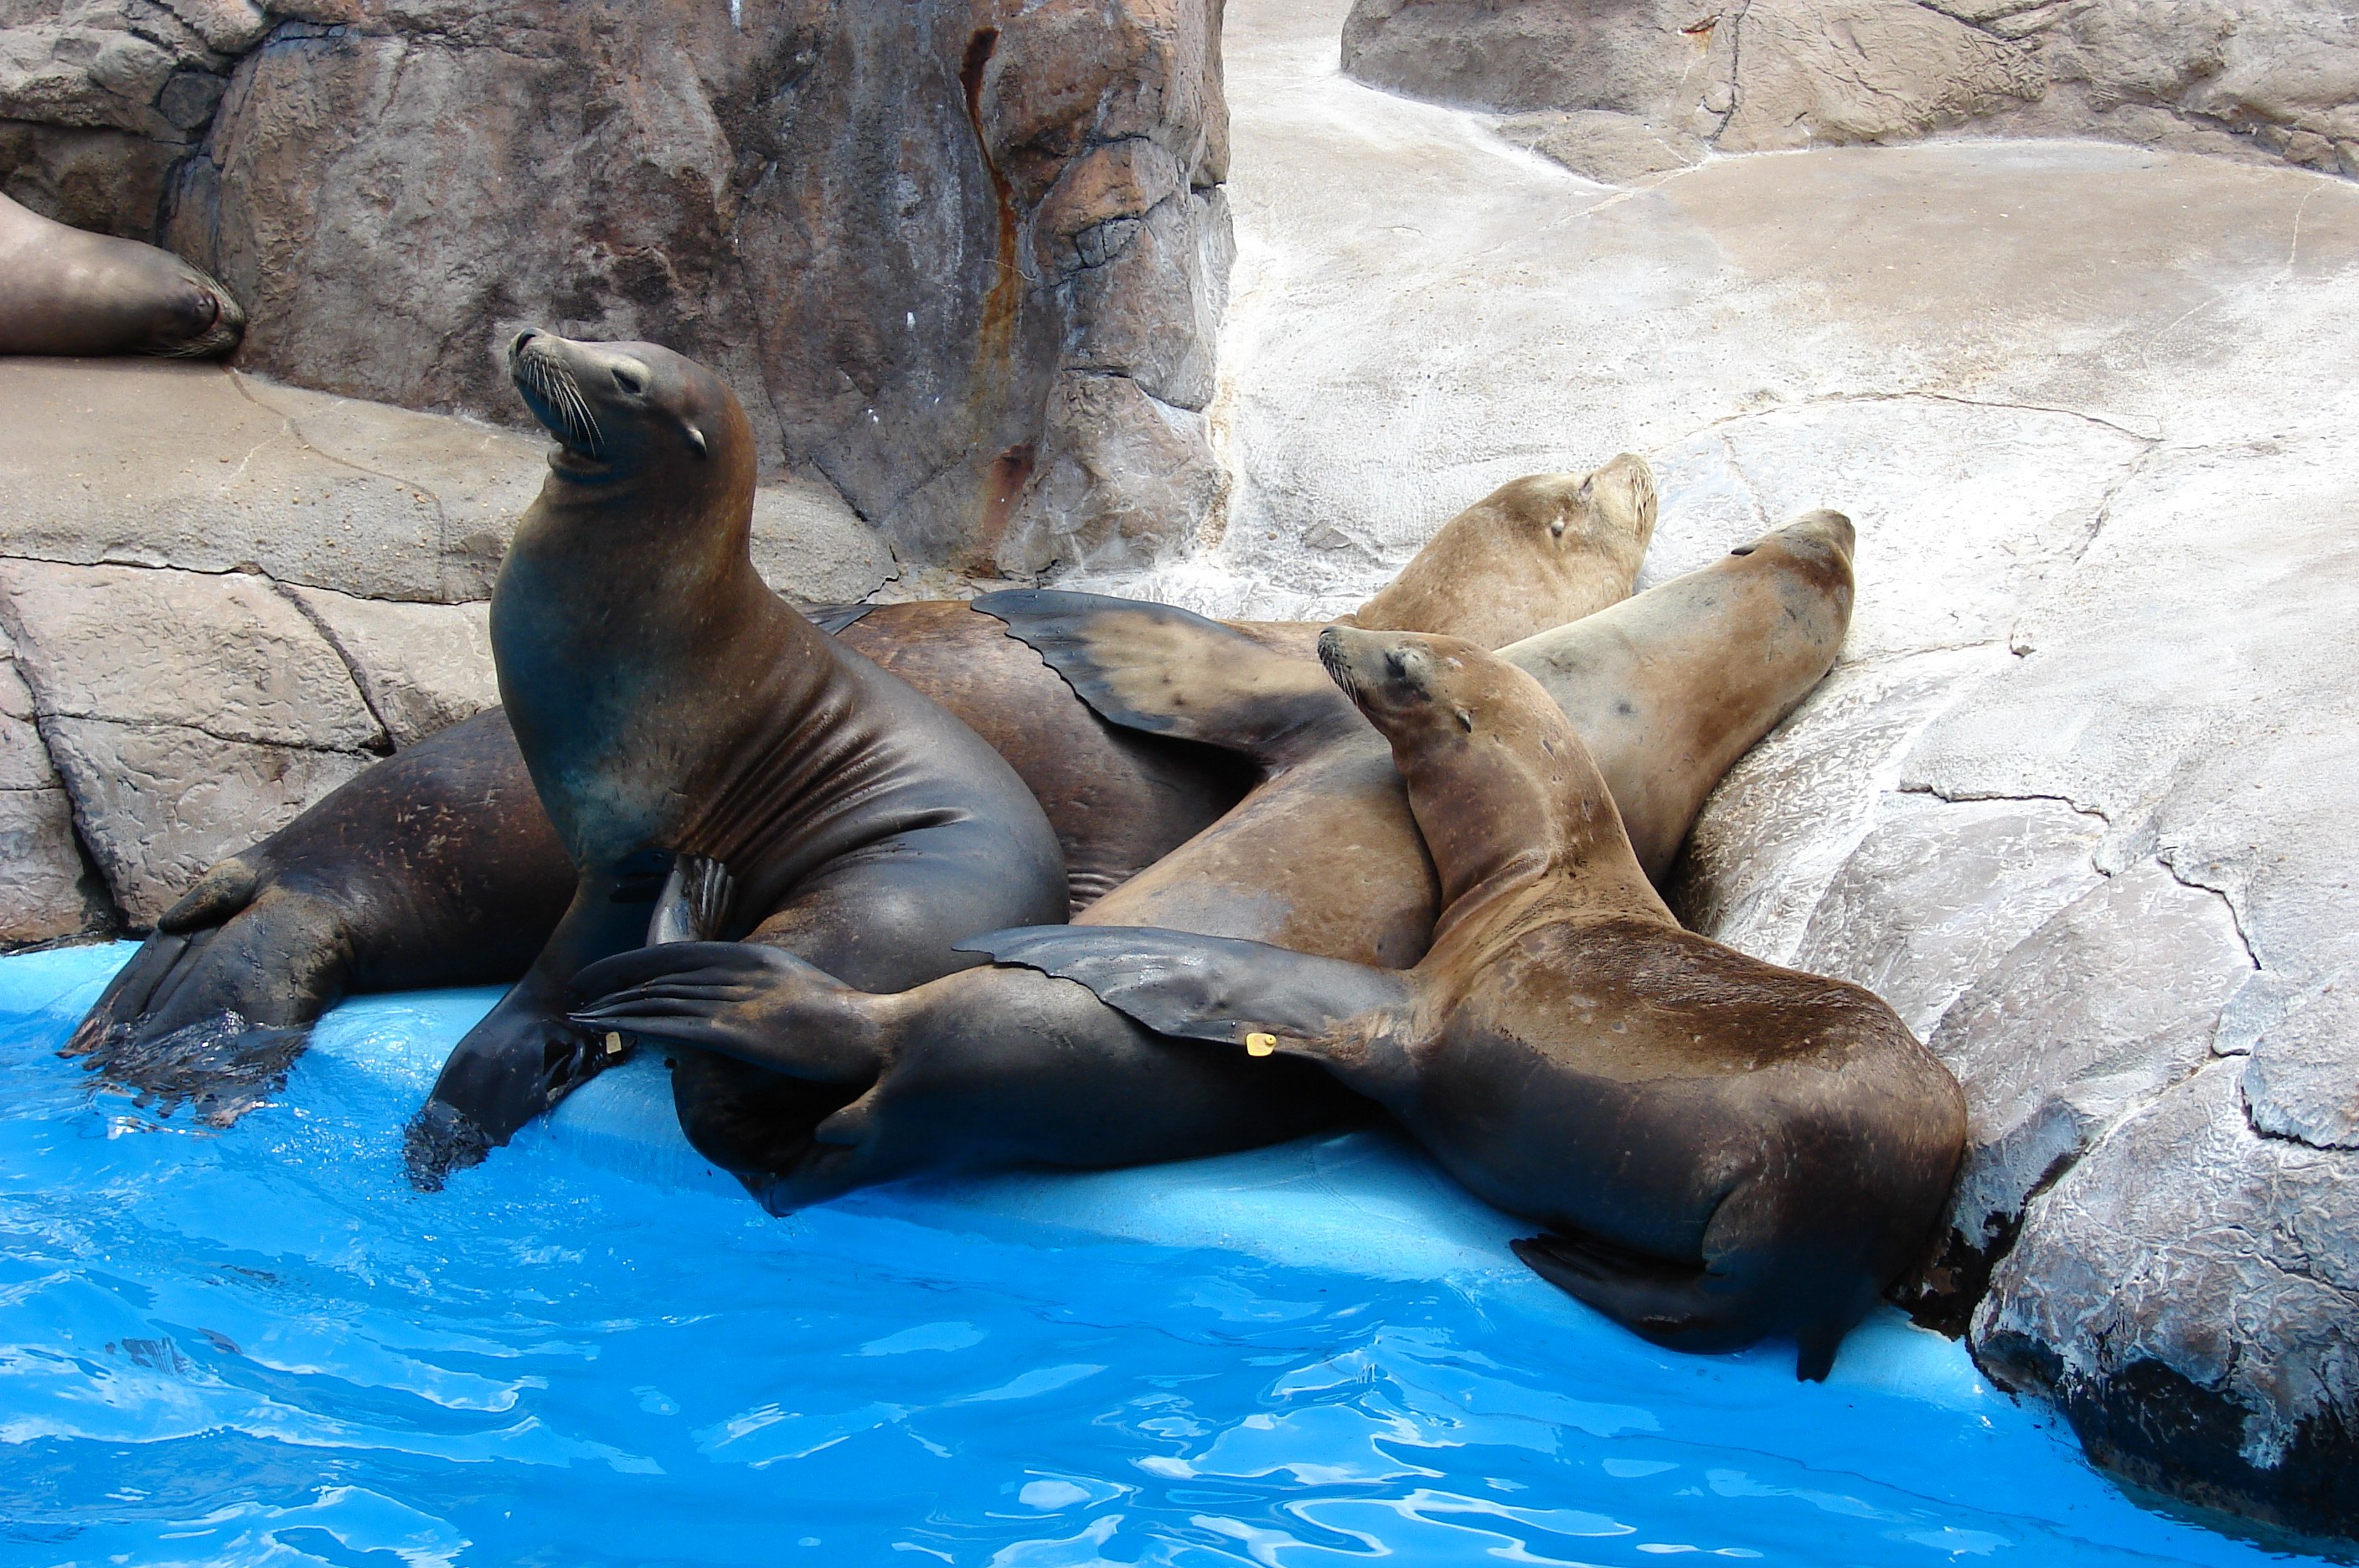 Description seals seaworld sanantonio 5292